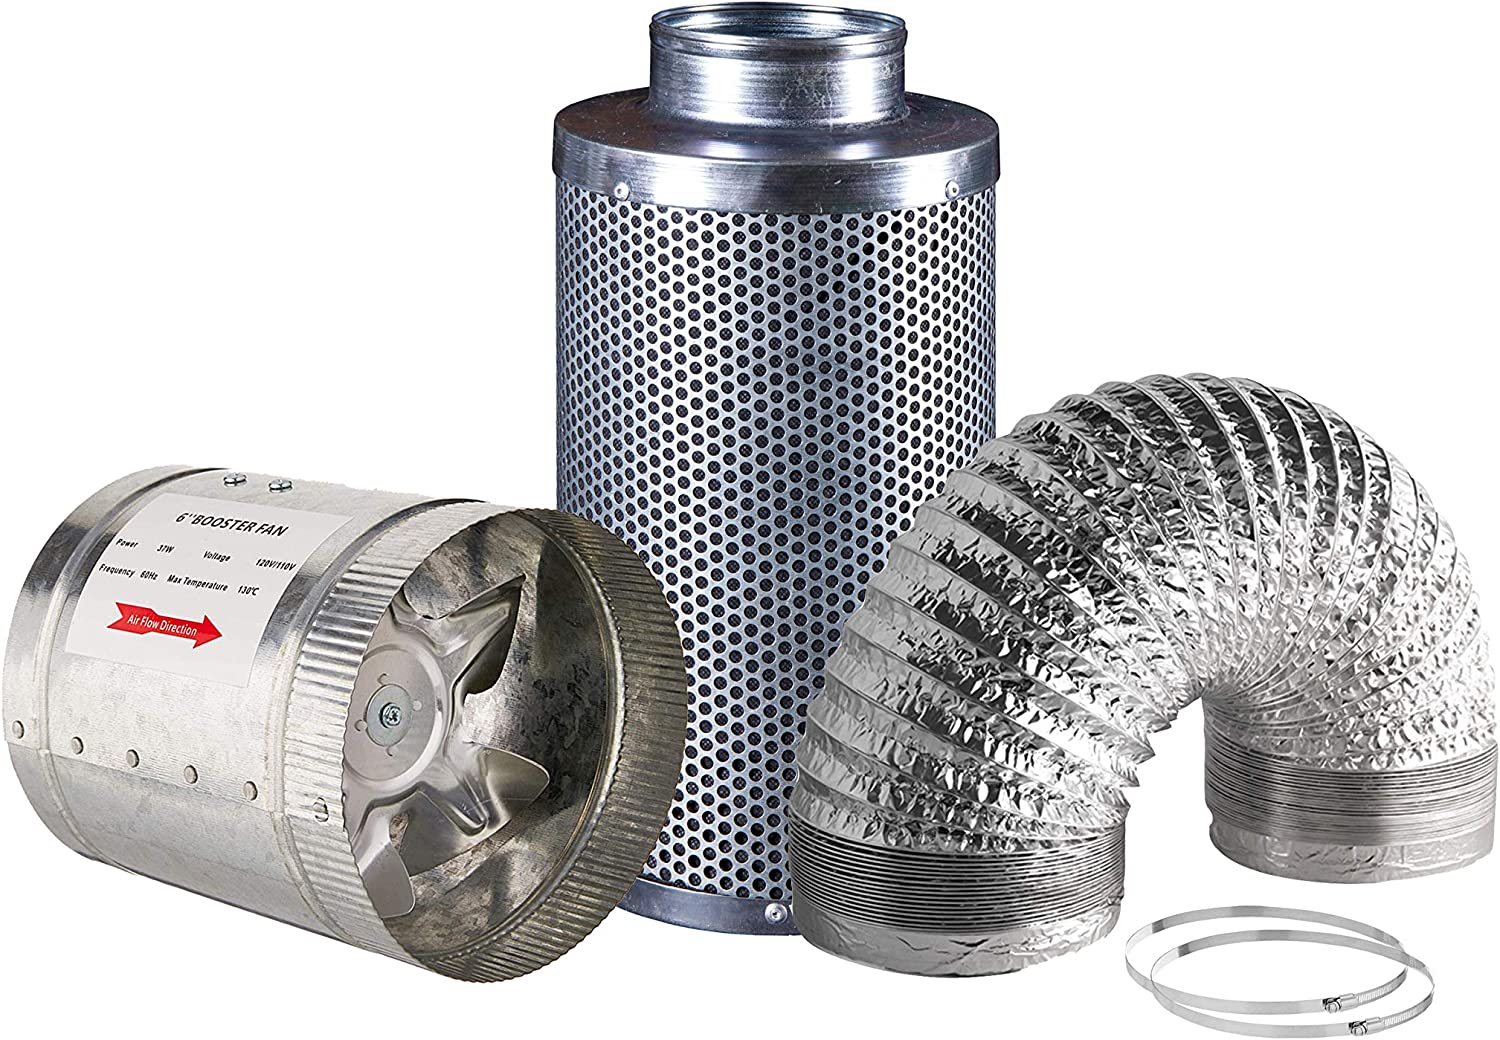 """Hydro Crunch 6 inch 240 CFM Booster Fan & 6"""" x 12"""" Carbon Filter with 6"""" x 25ft. Ducting Hydroponic Ventilation Kit"""